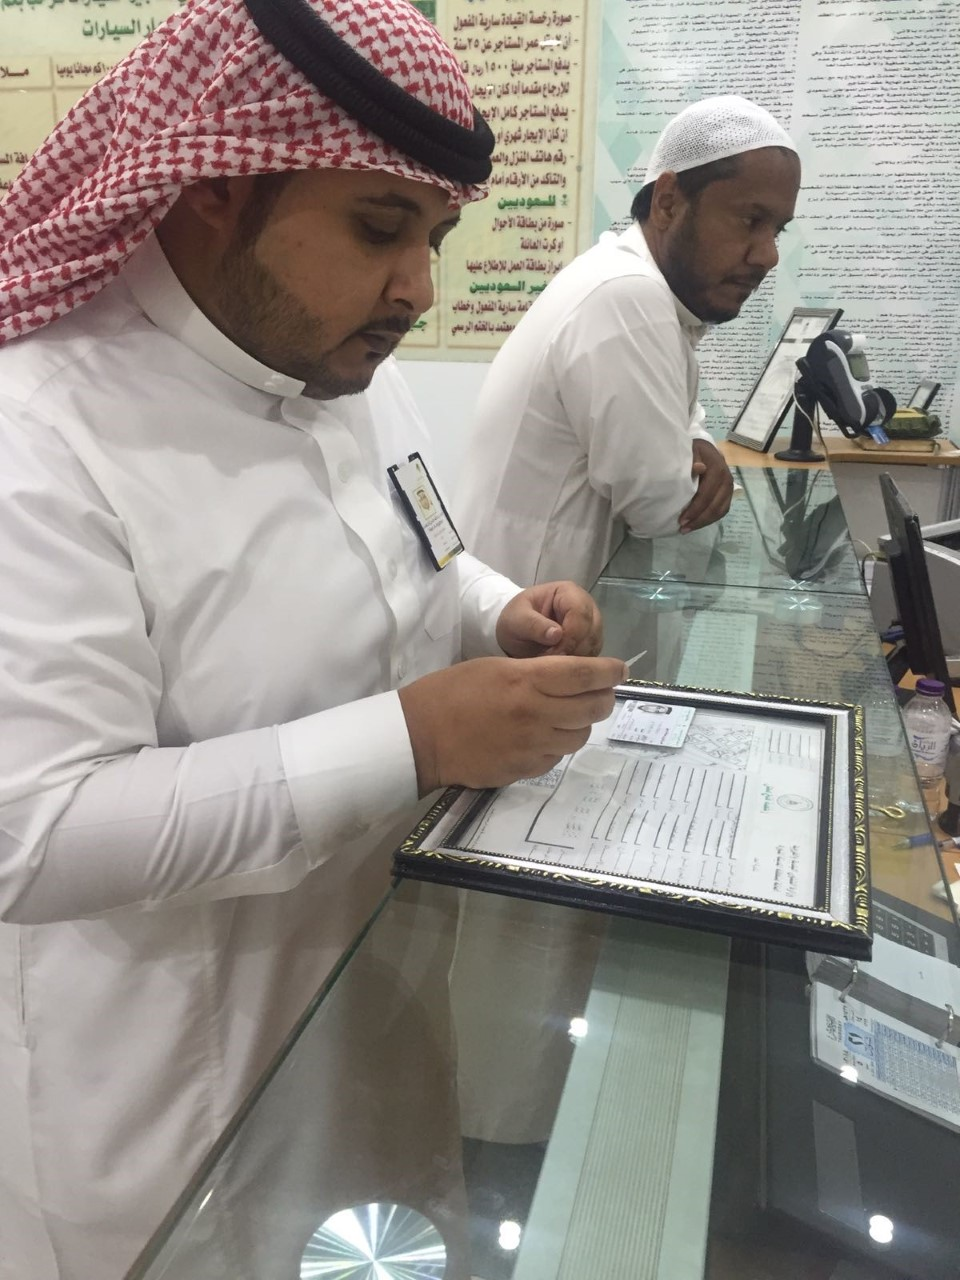 MLSD conducts 15,000 inspection rounds on car rental shops, uncovering 551 violations